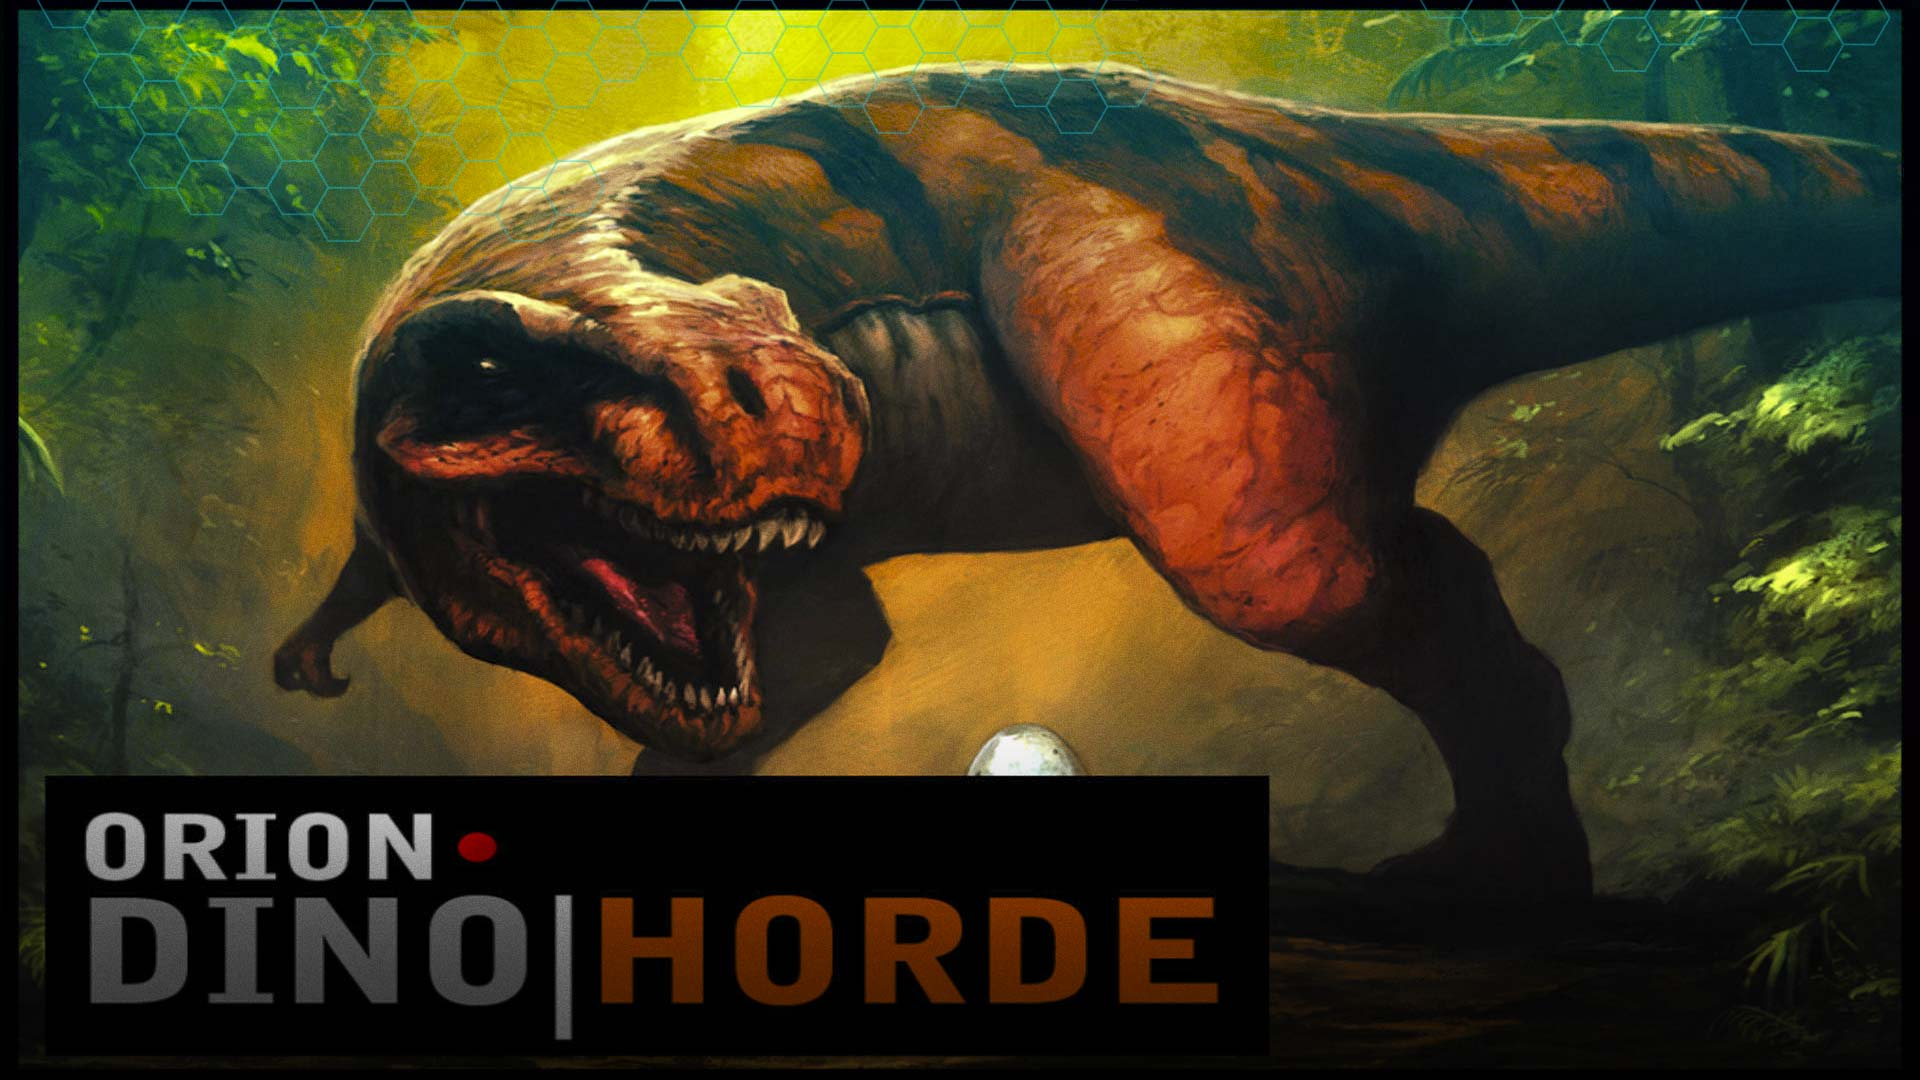 Artistry in Games orion-dino-horde Spiraling Into Control: The Incredible Journey of Spiral Game Studios Features  Spiral Game Studios Spiral Prassel ORION London kickstarter games Game design Dino Horde